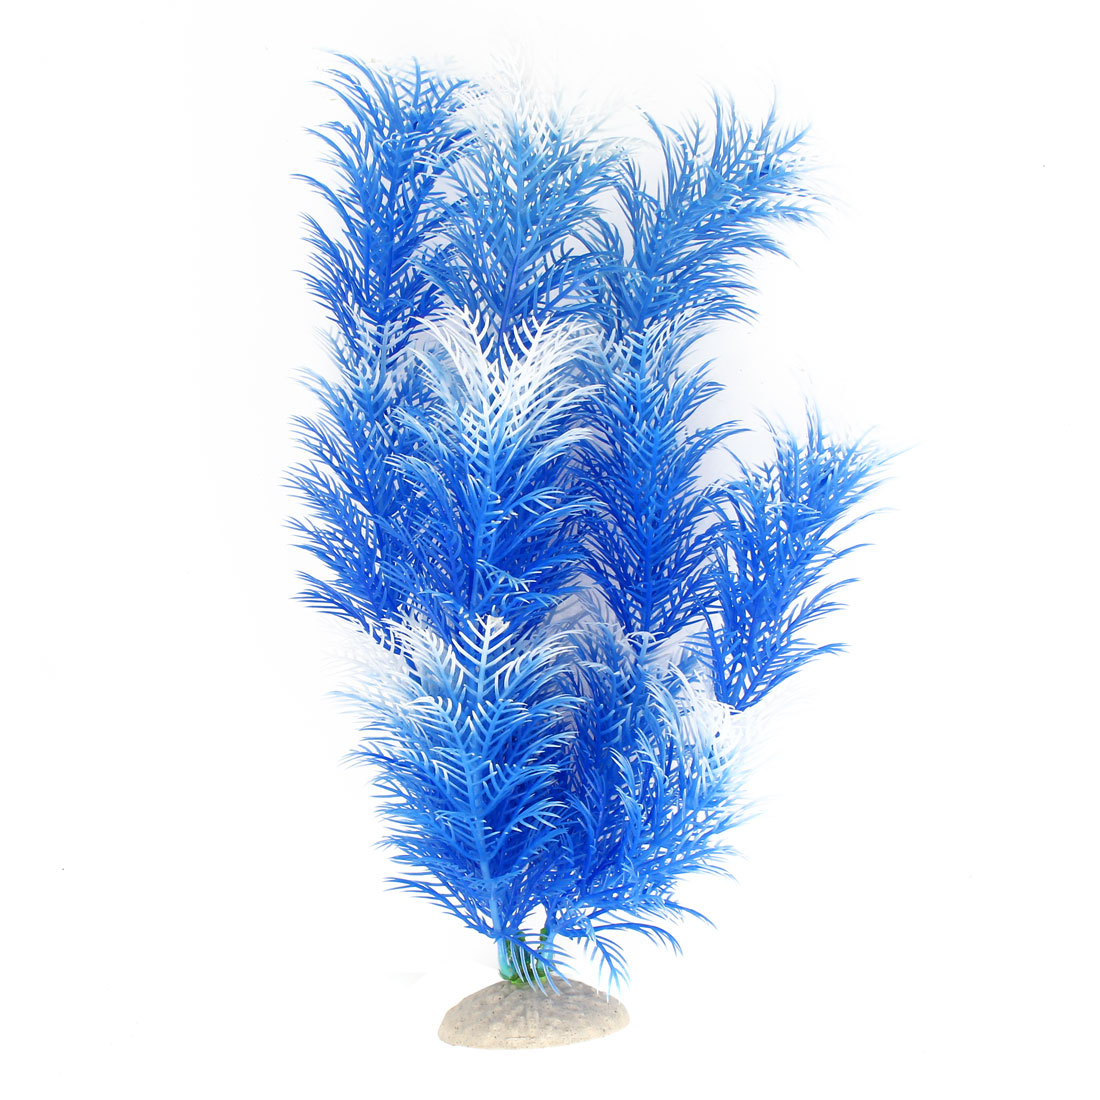 "Blue White 12.2"" Height Fish Tank Plastic Simulation Aquatic Plant Ornament Decor"